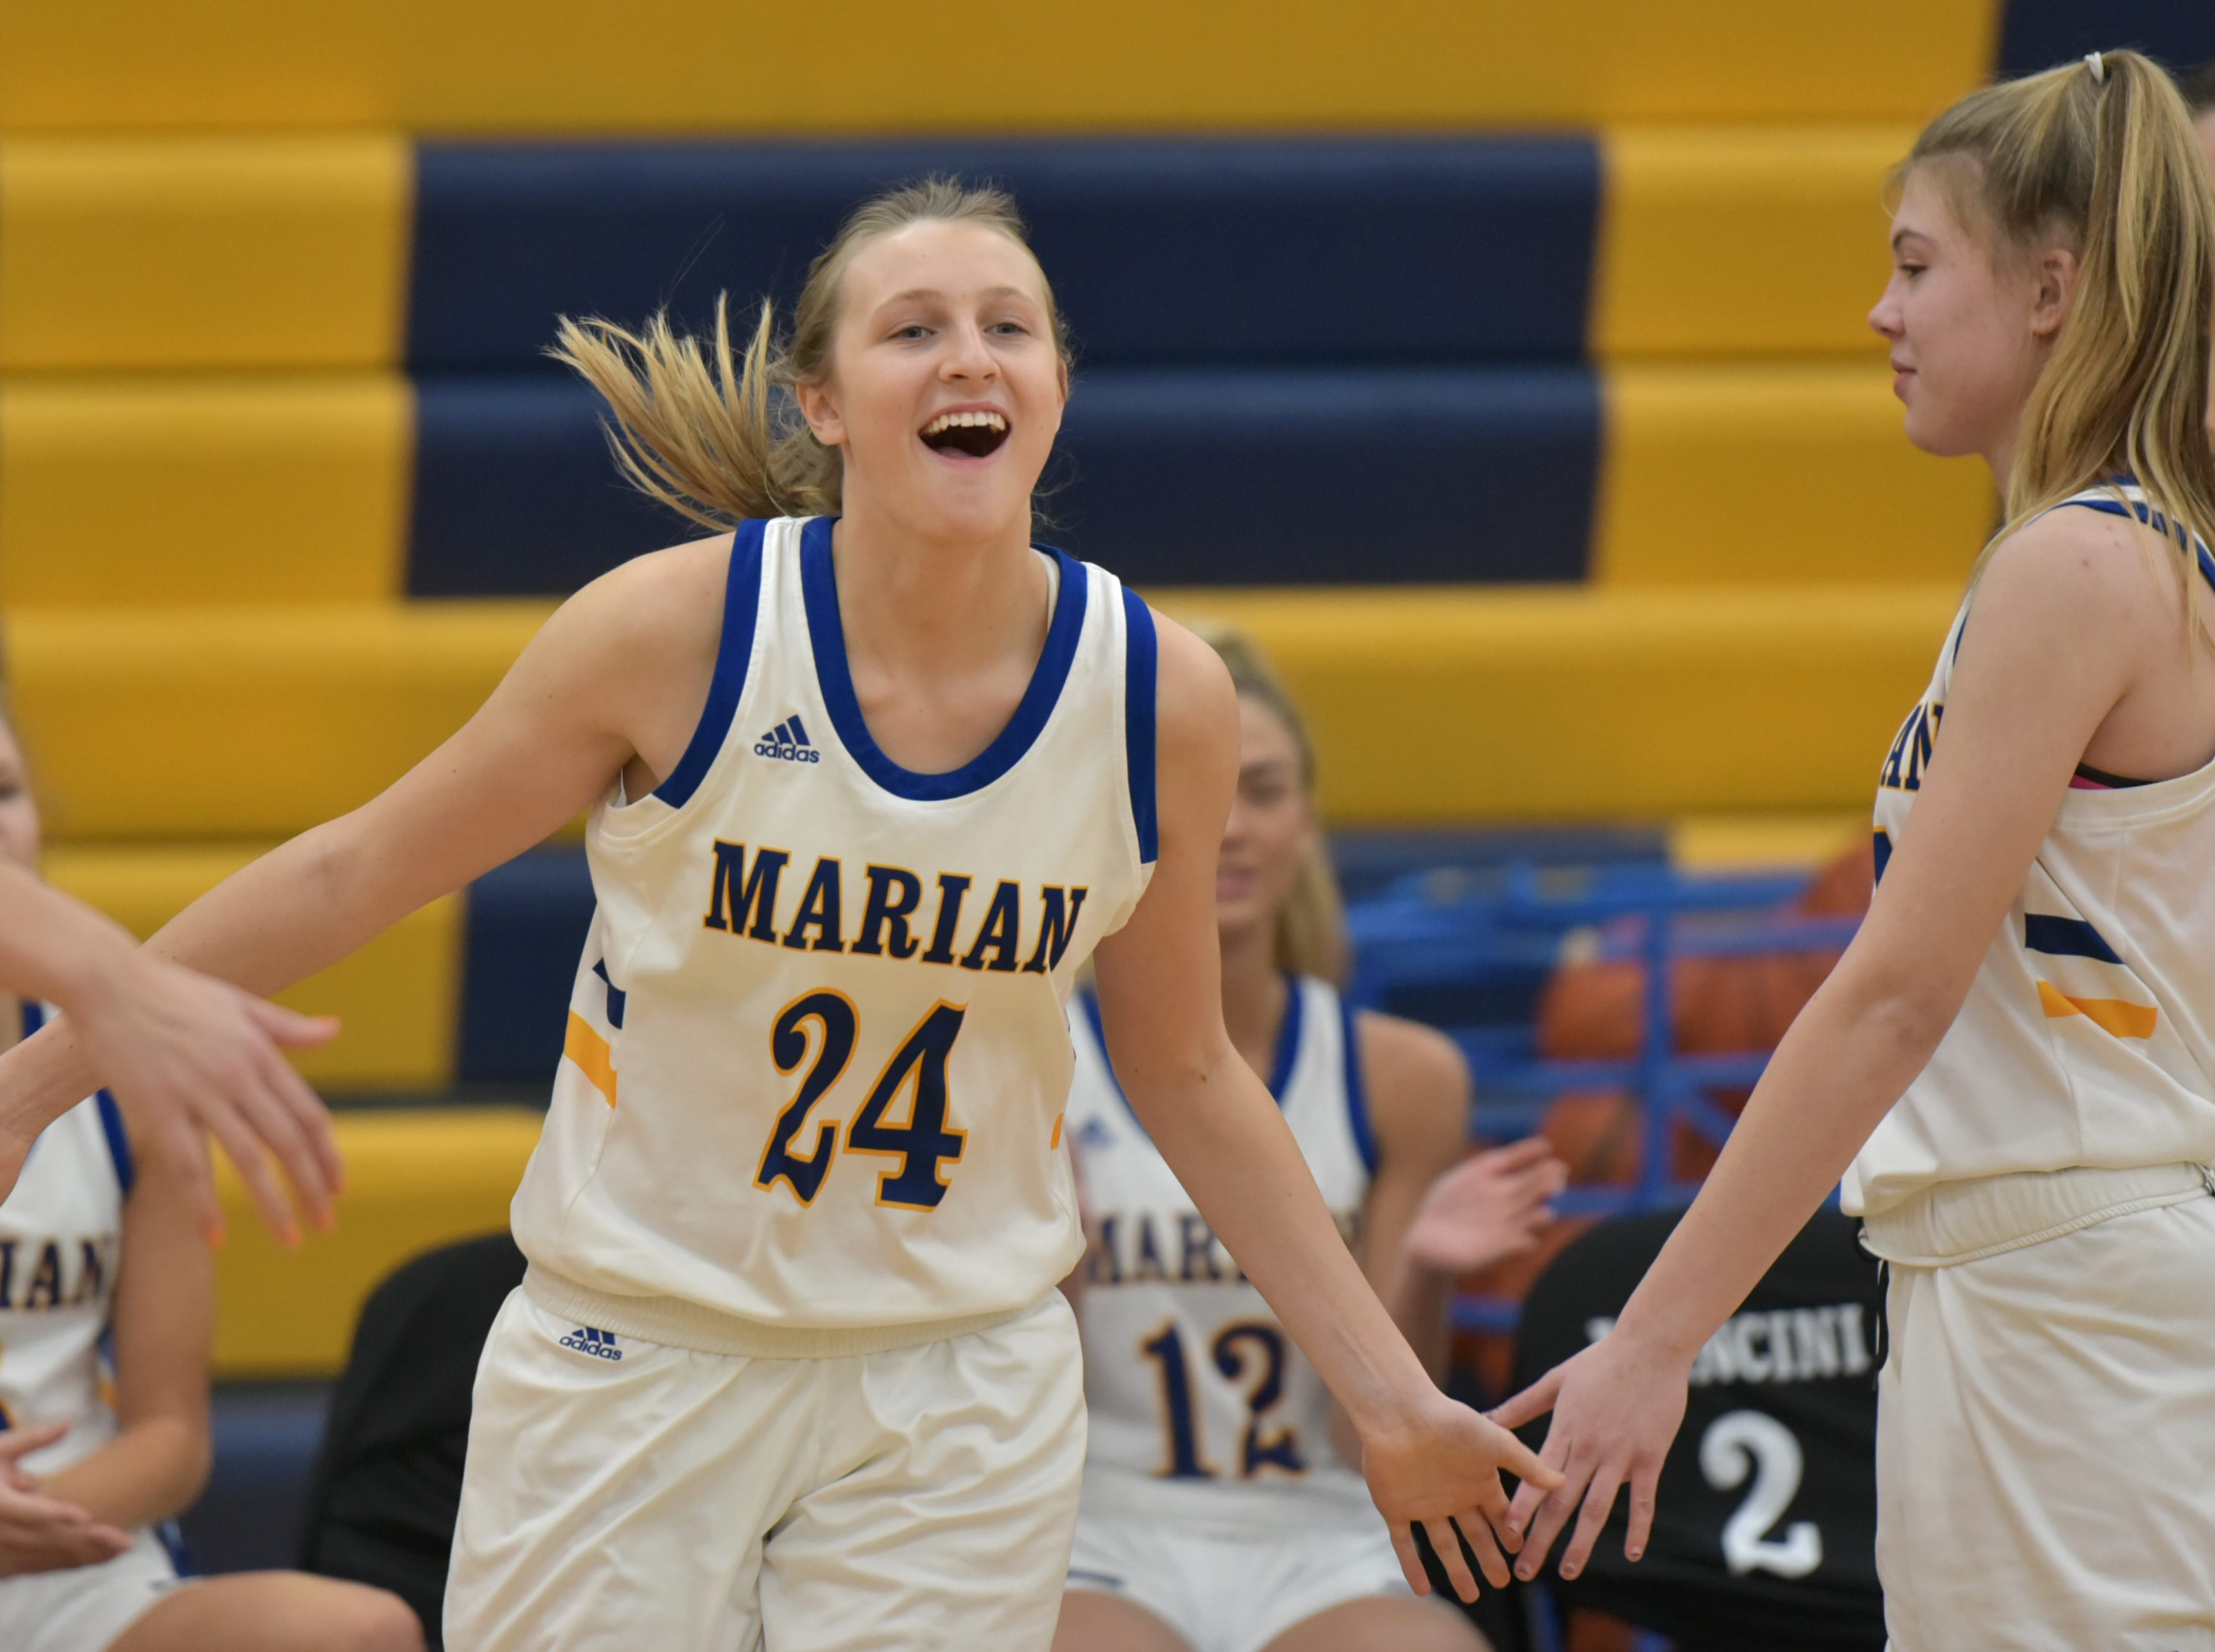 Marian High's Shannon Kennedy smiles as she's introduced during the Marlin's Jan. 19 home game.